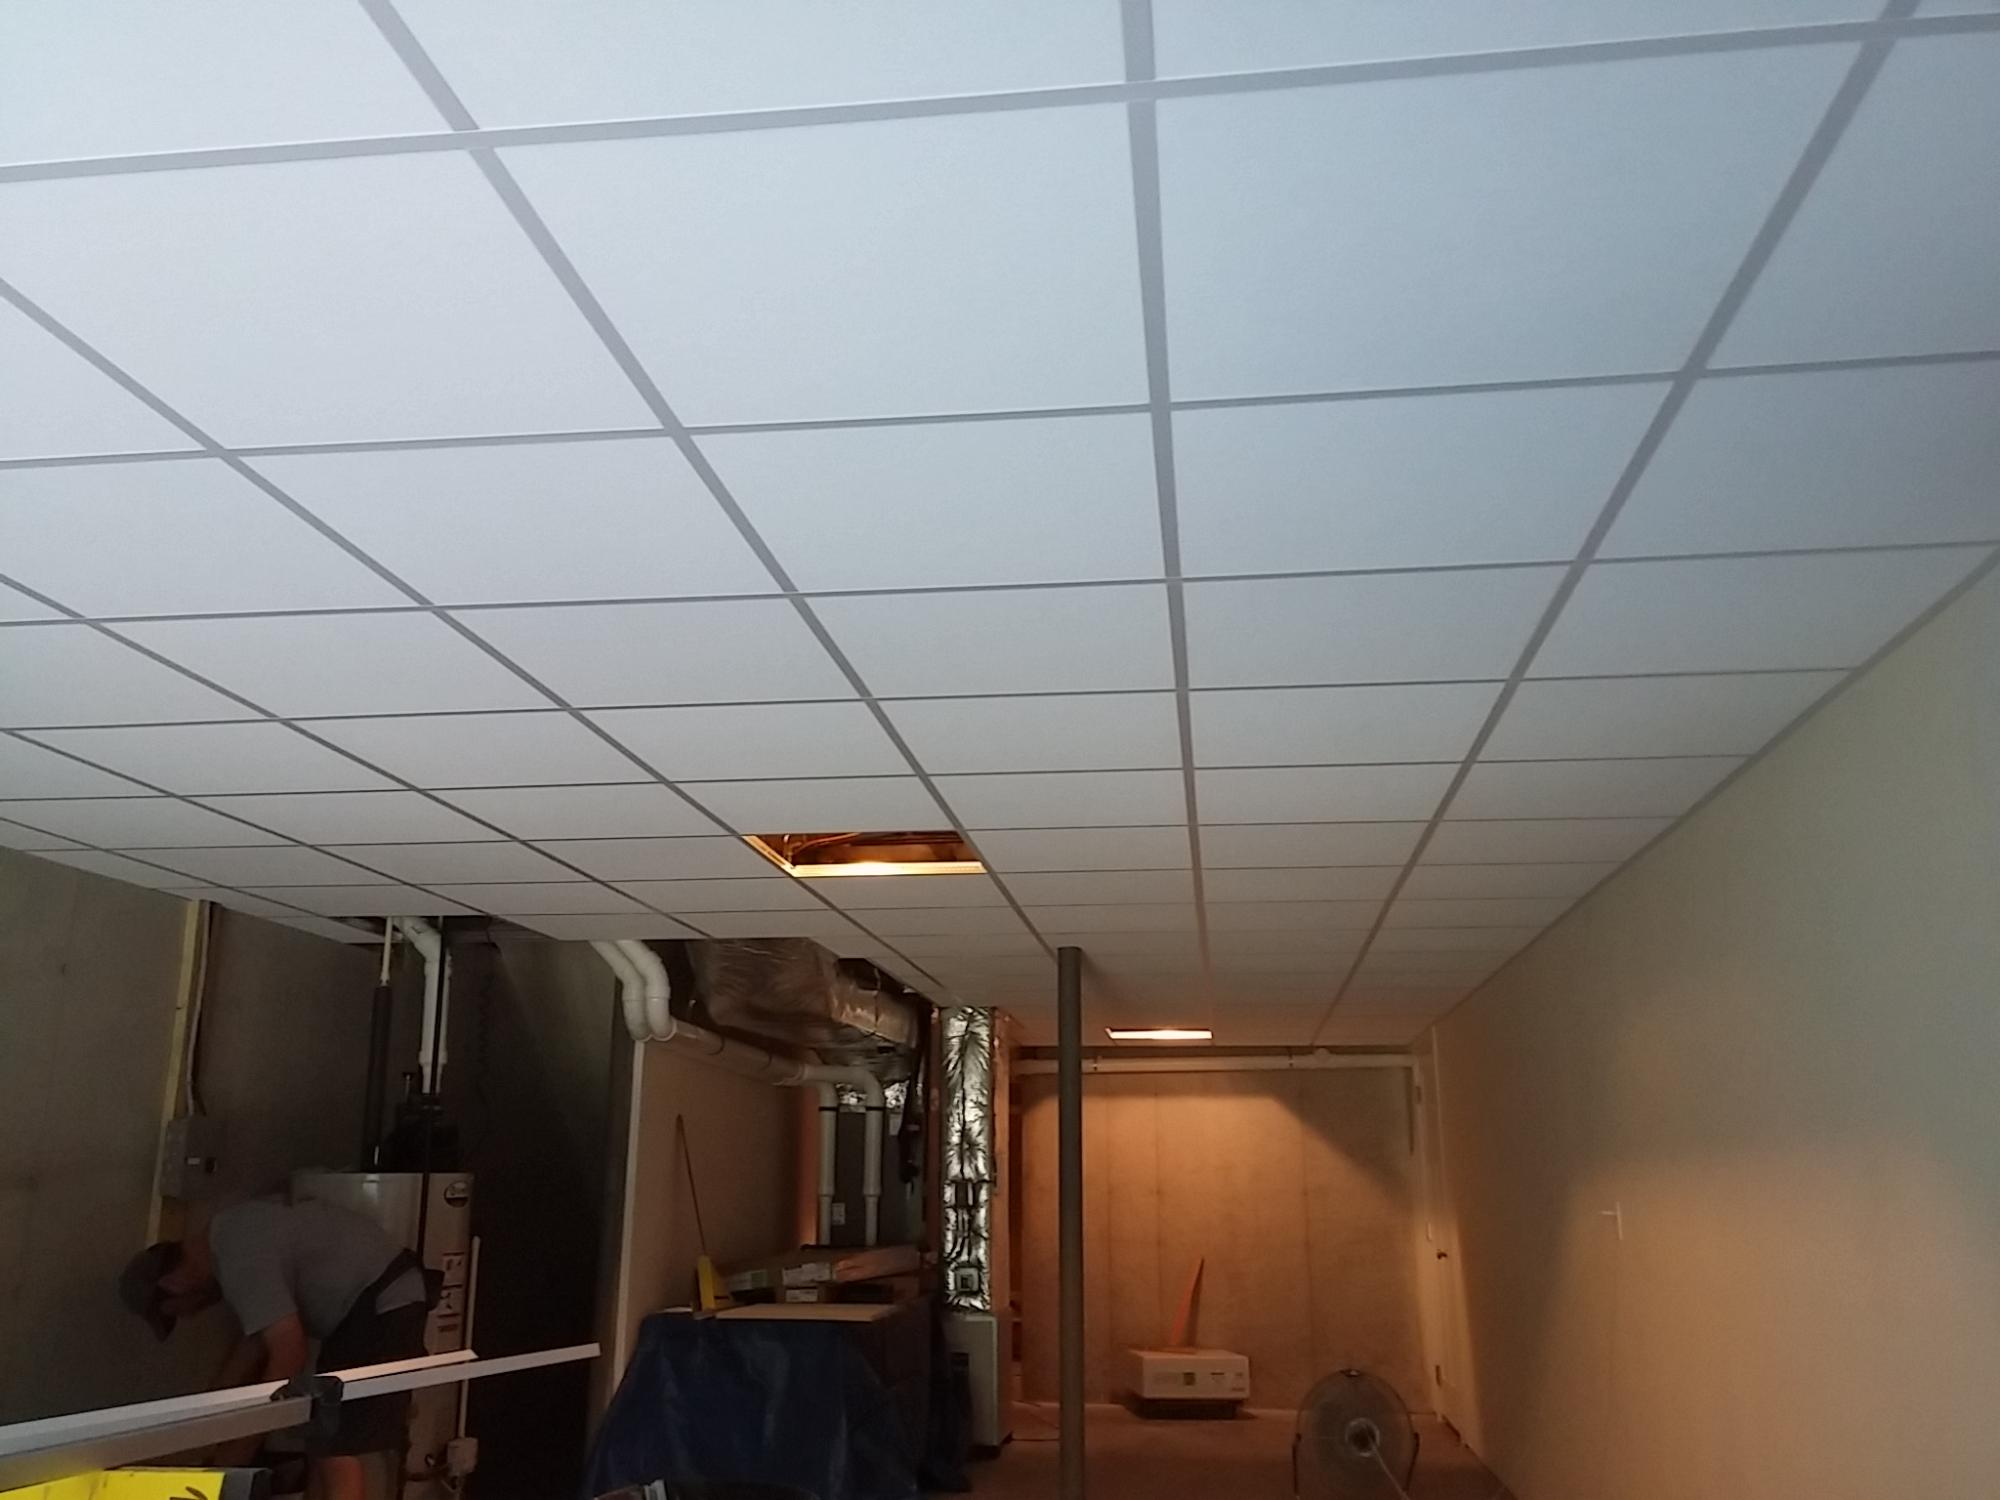 smk ceiling pa repair plaster llc img erie contractor hdr stucco plastering